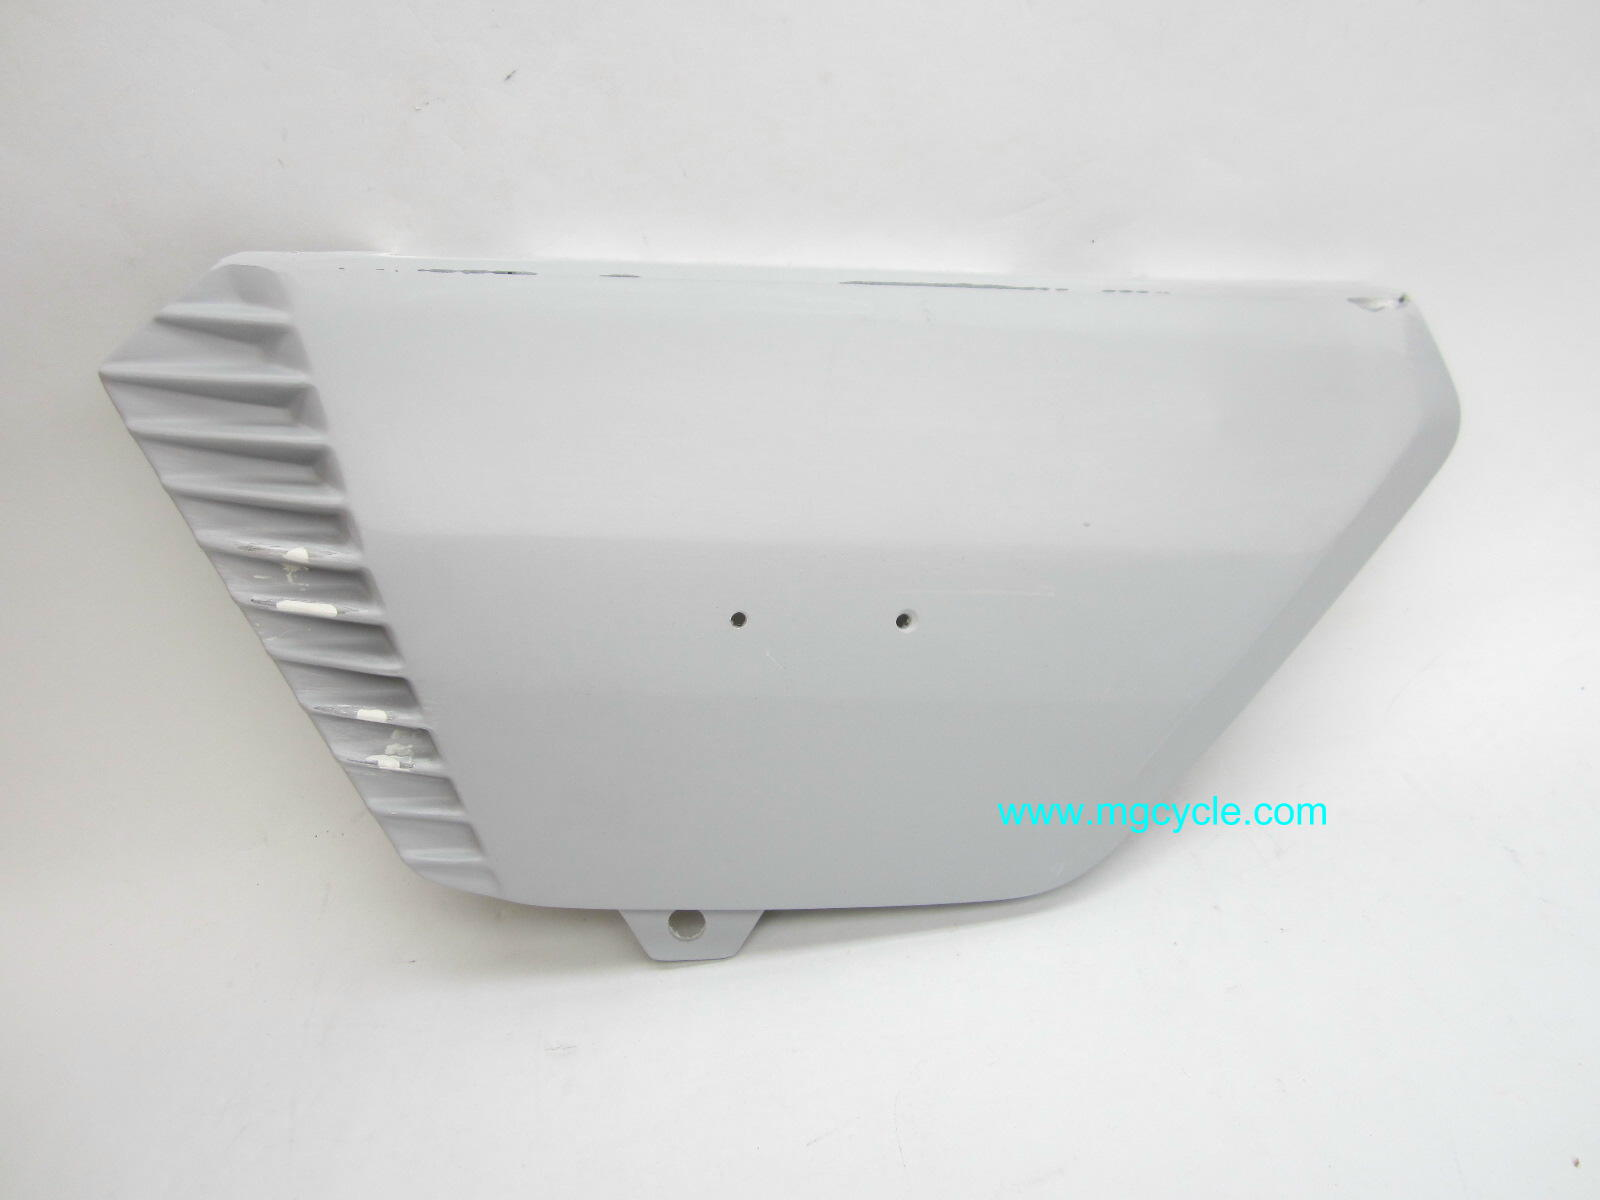 V50 V50 II battery cover, side cover, left side, unpainted